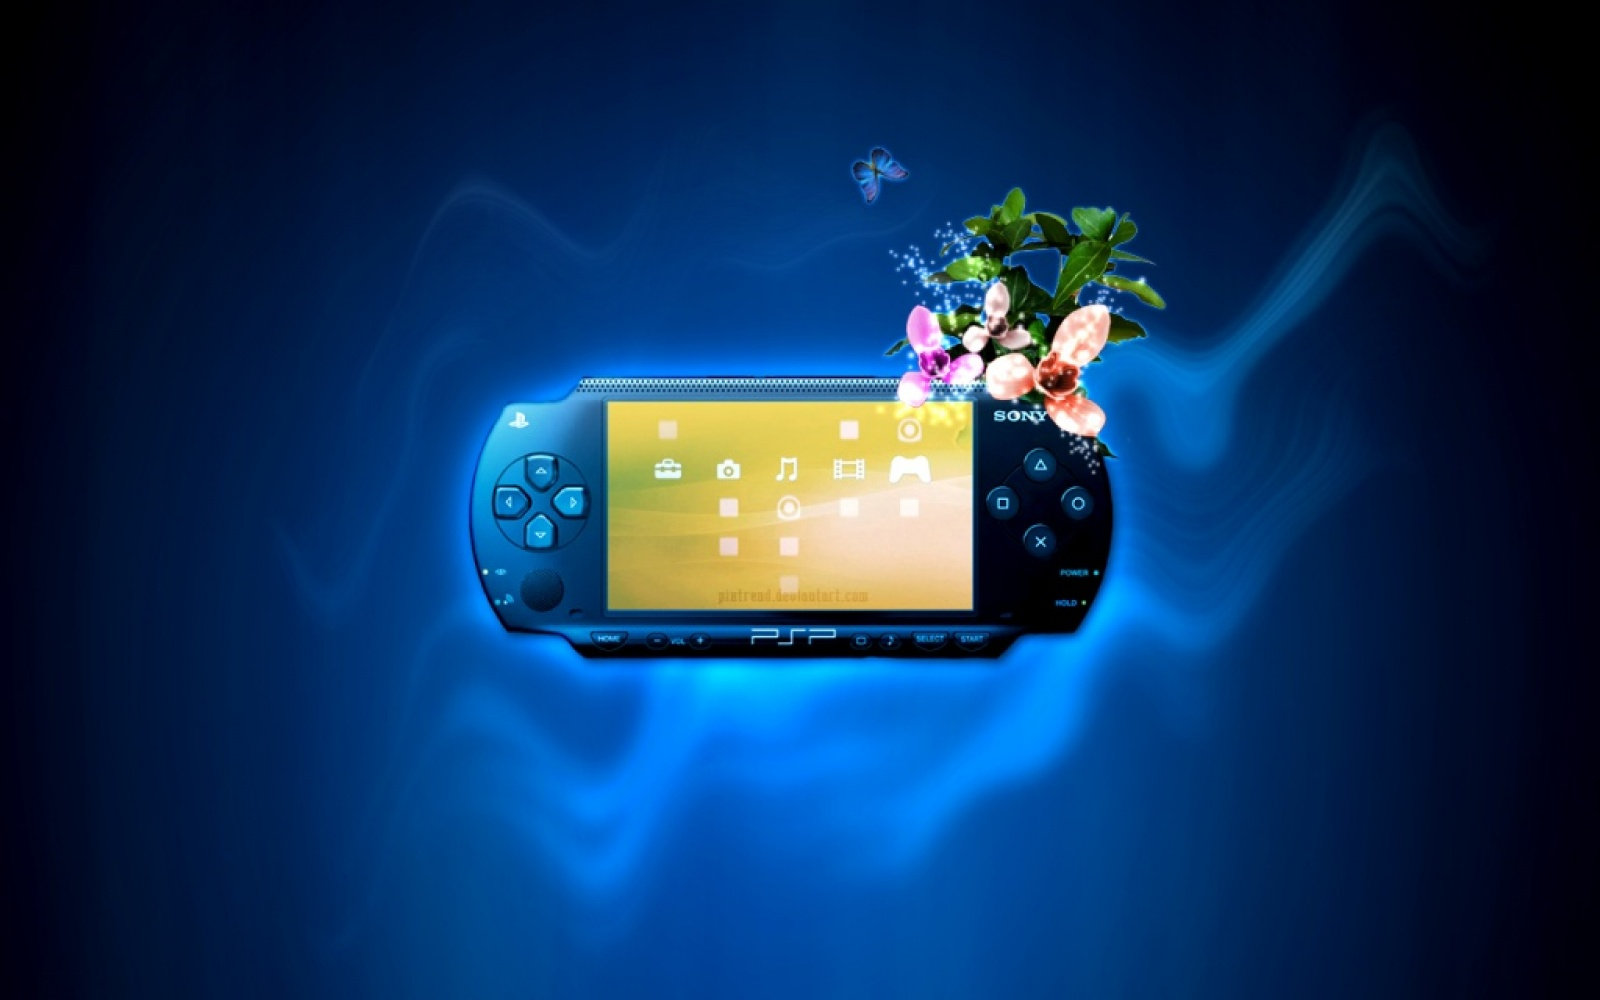 Cool PSP Wallpapers 1600x1000